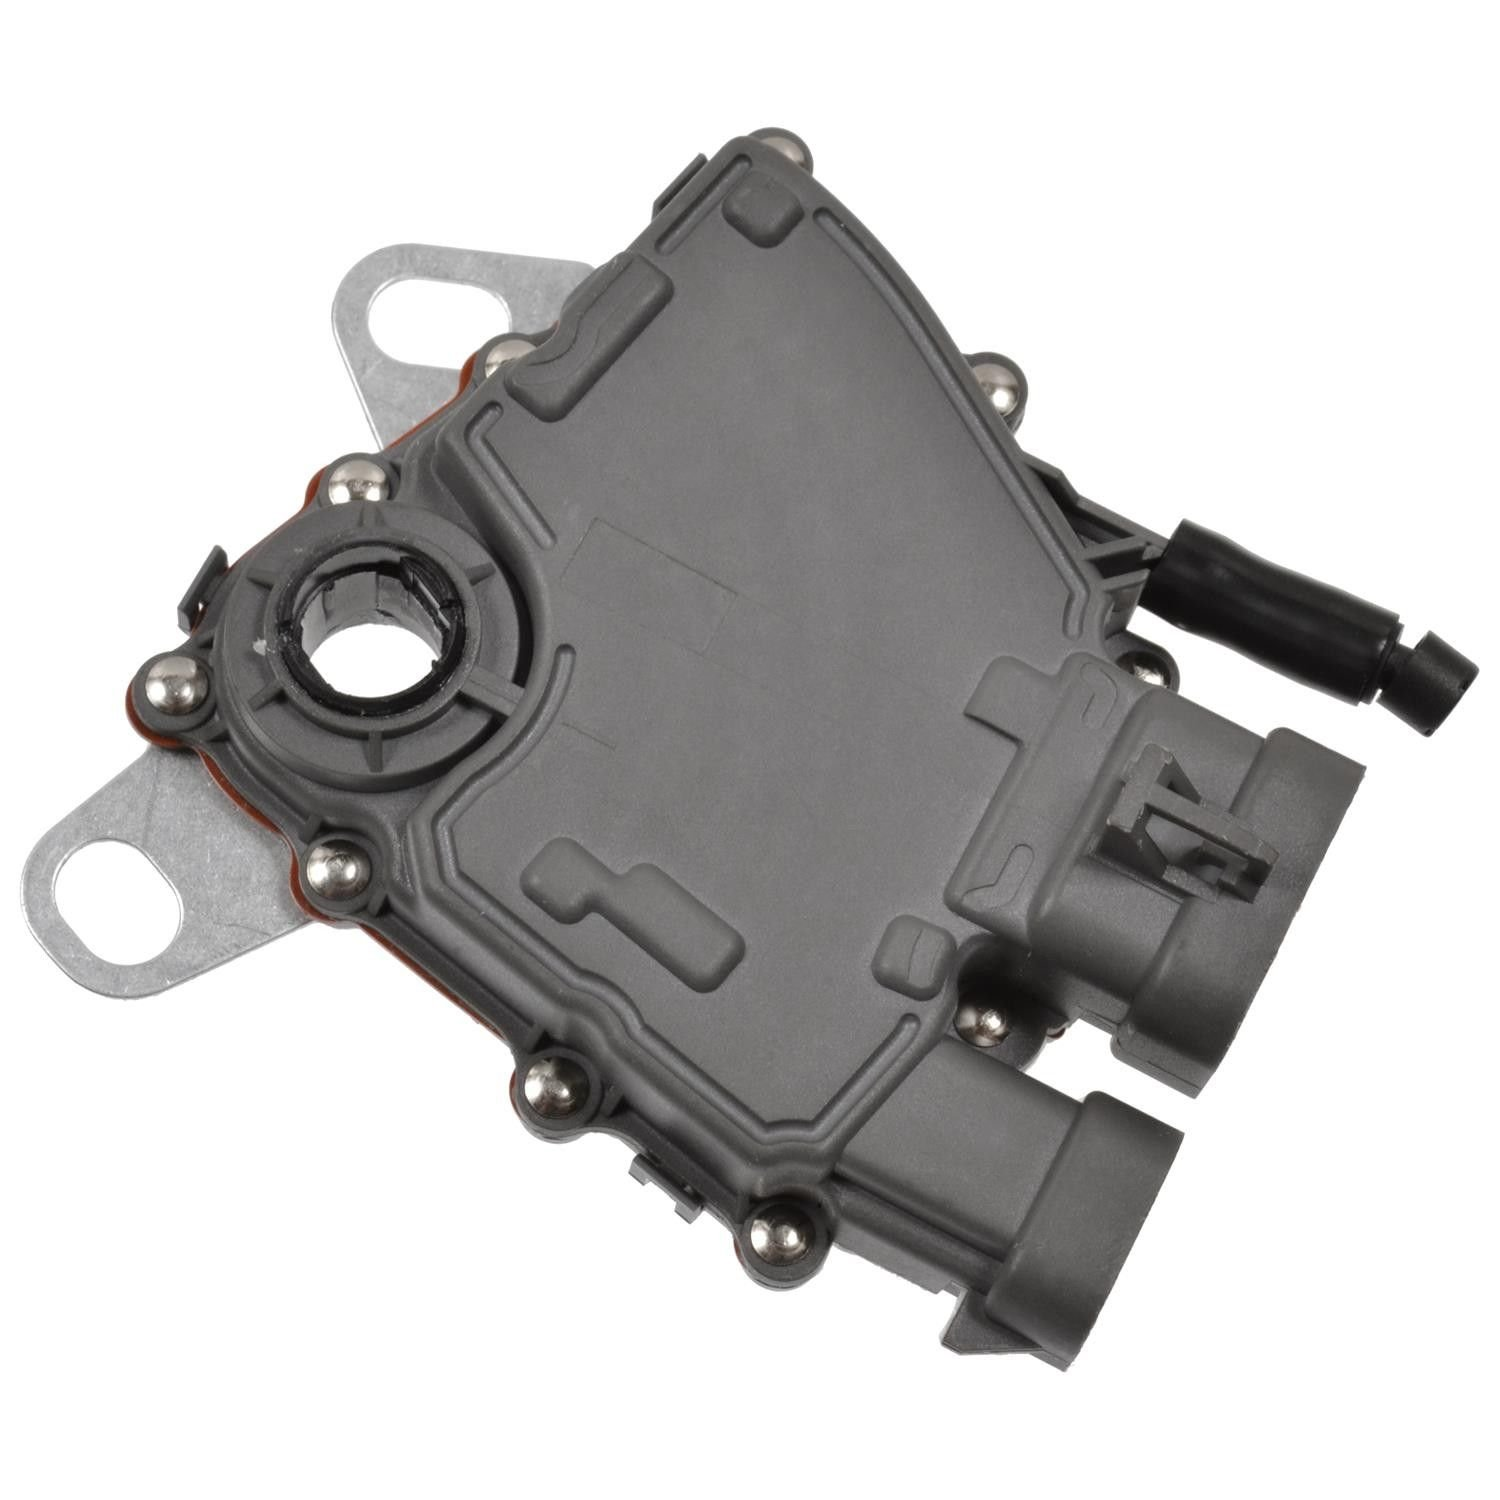 1997 Pontiac Bonneville Transmission: Neutral Safety Switch Replacement (ACDelco, APA/URO Parts